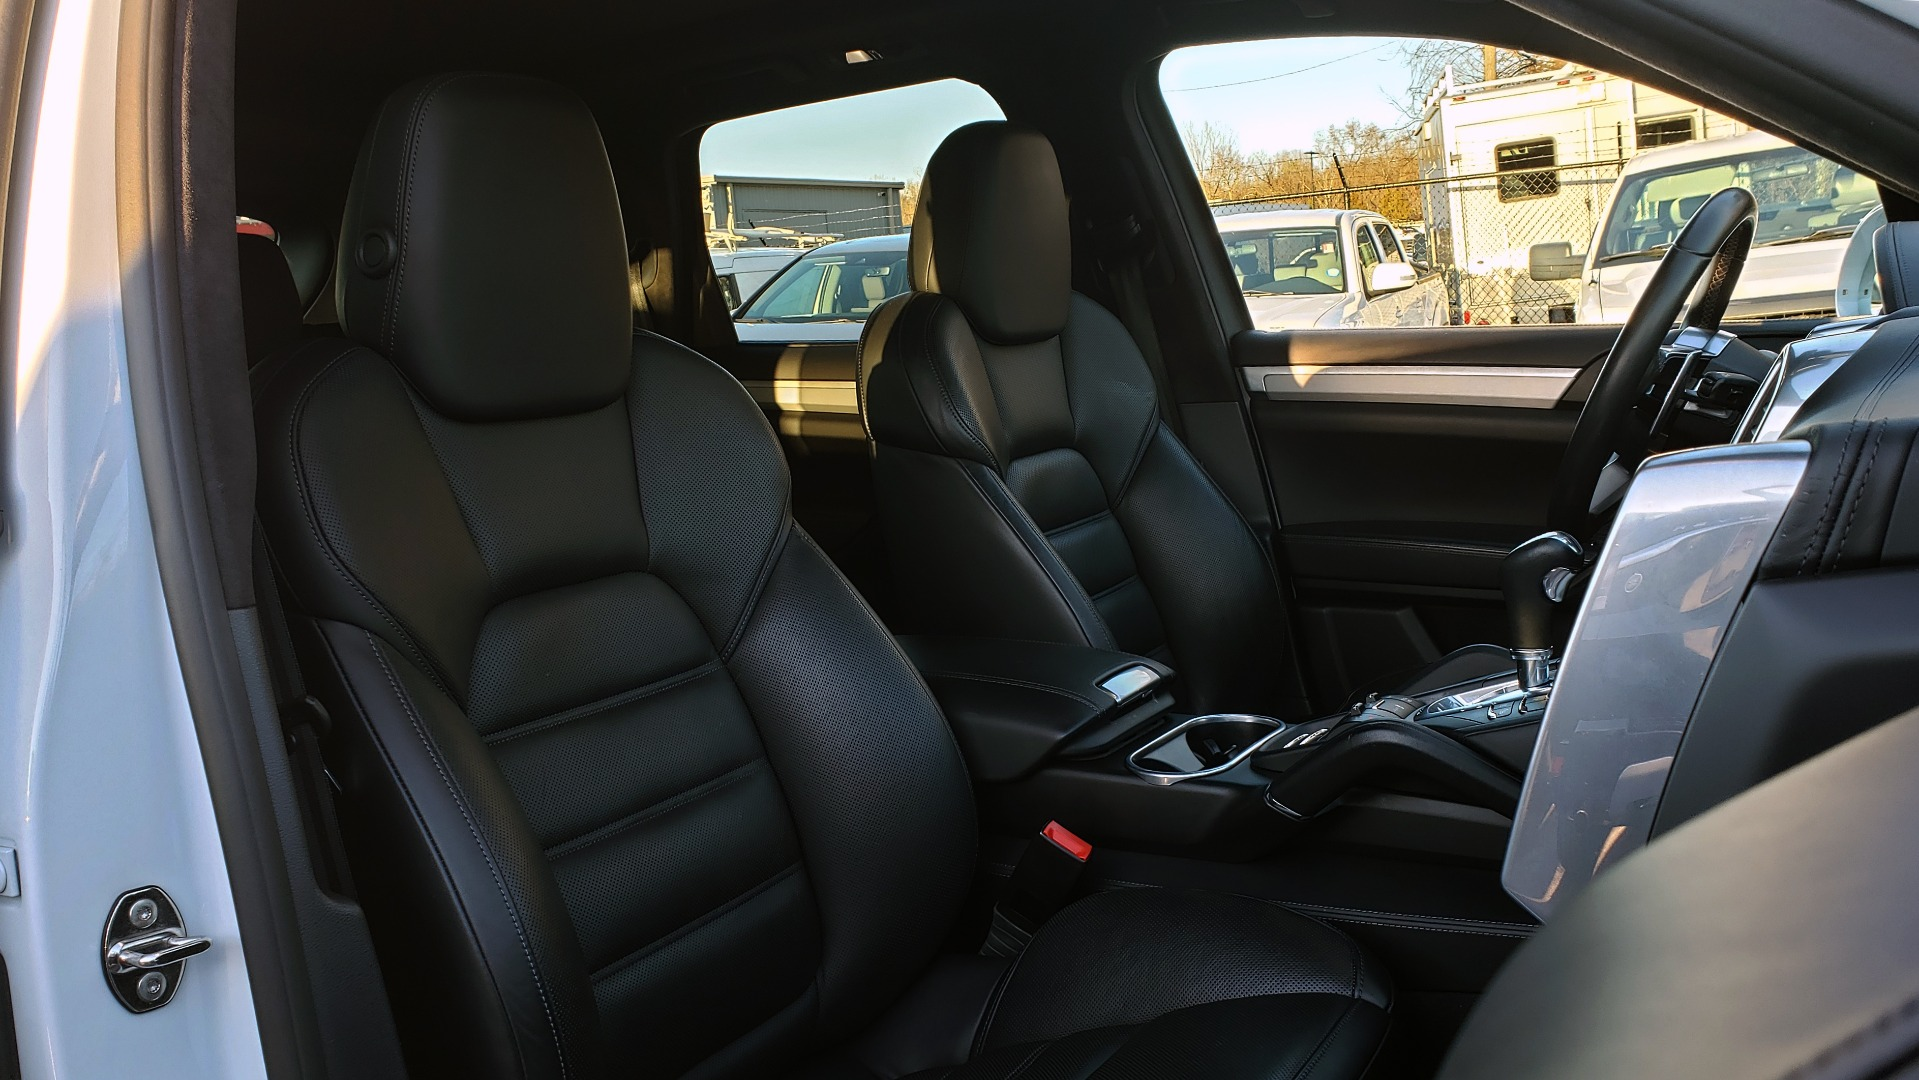 Used 2015 Porsche CAYENNE TURBO V8 / PREMIUM / NAV / SUNROOF / PARK ASSIST / LCA / REARVIEW for sale $47,995 at Formula Imports in Charlotte NC 28227 74